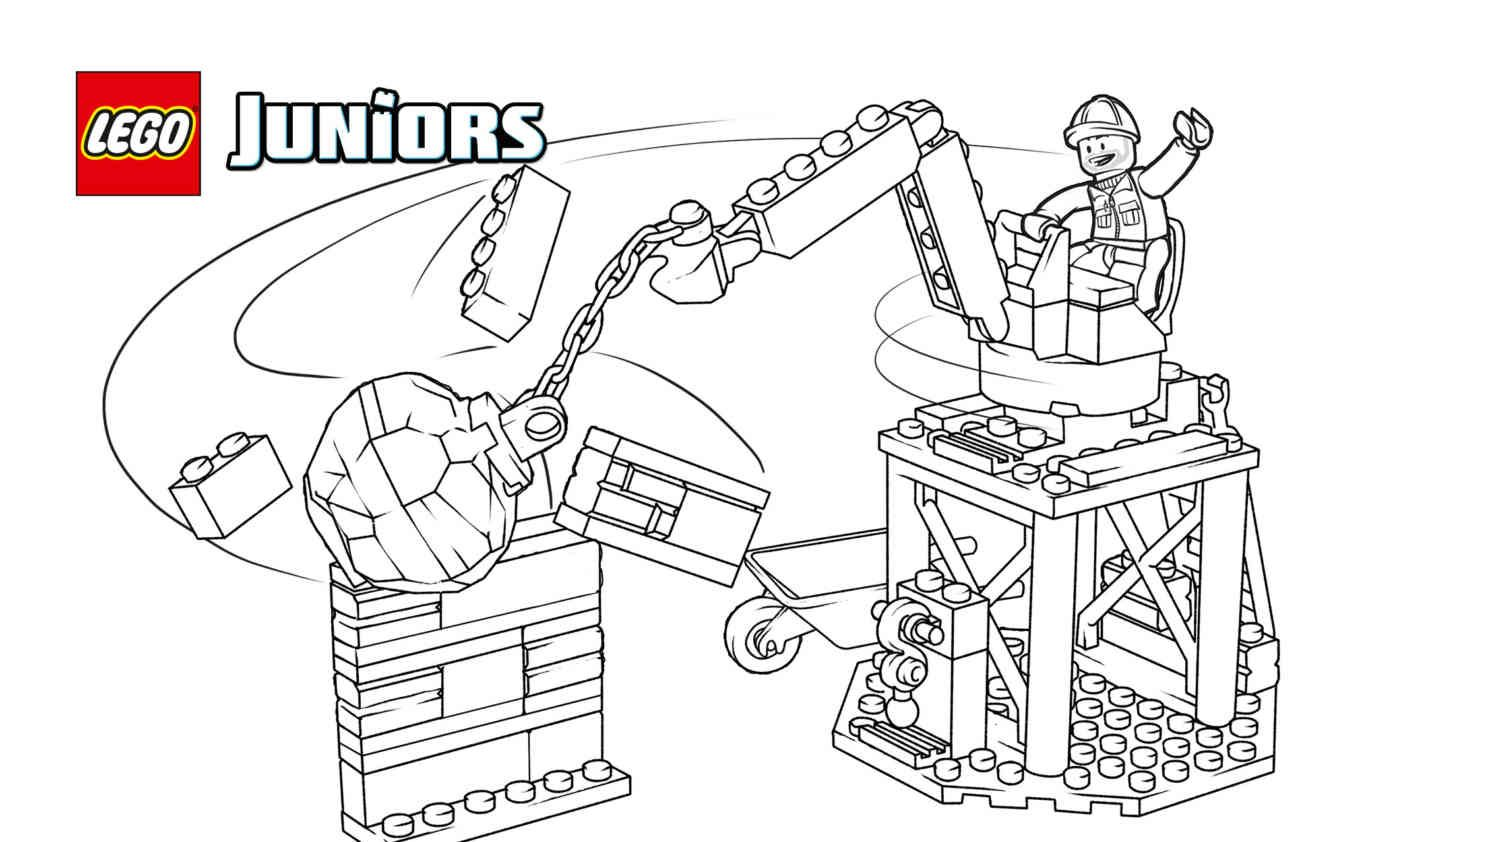 Free printable bulldozer truck coloring page as seen in the LEGO Juniors Demolition set